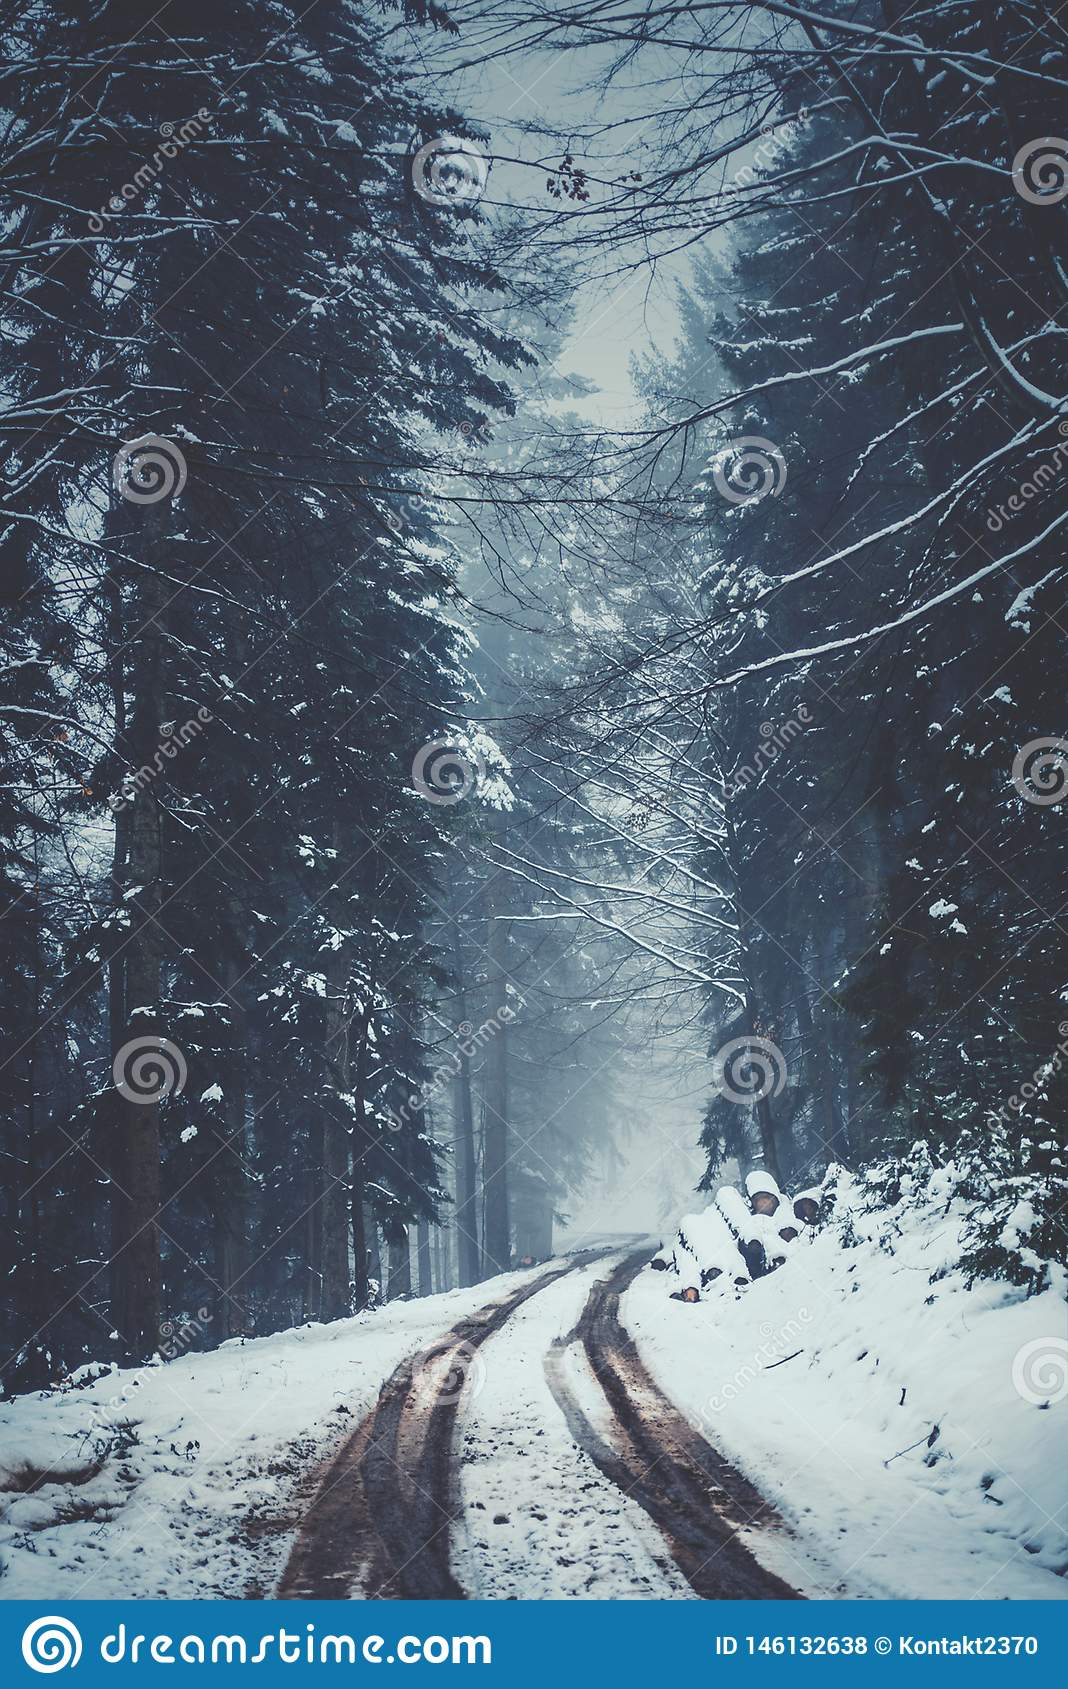 Snowy and Foggy Street in a winter forest